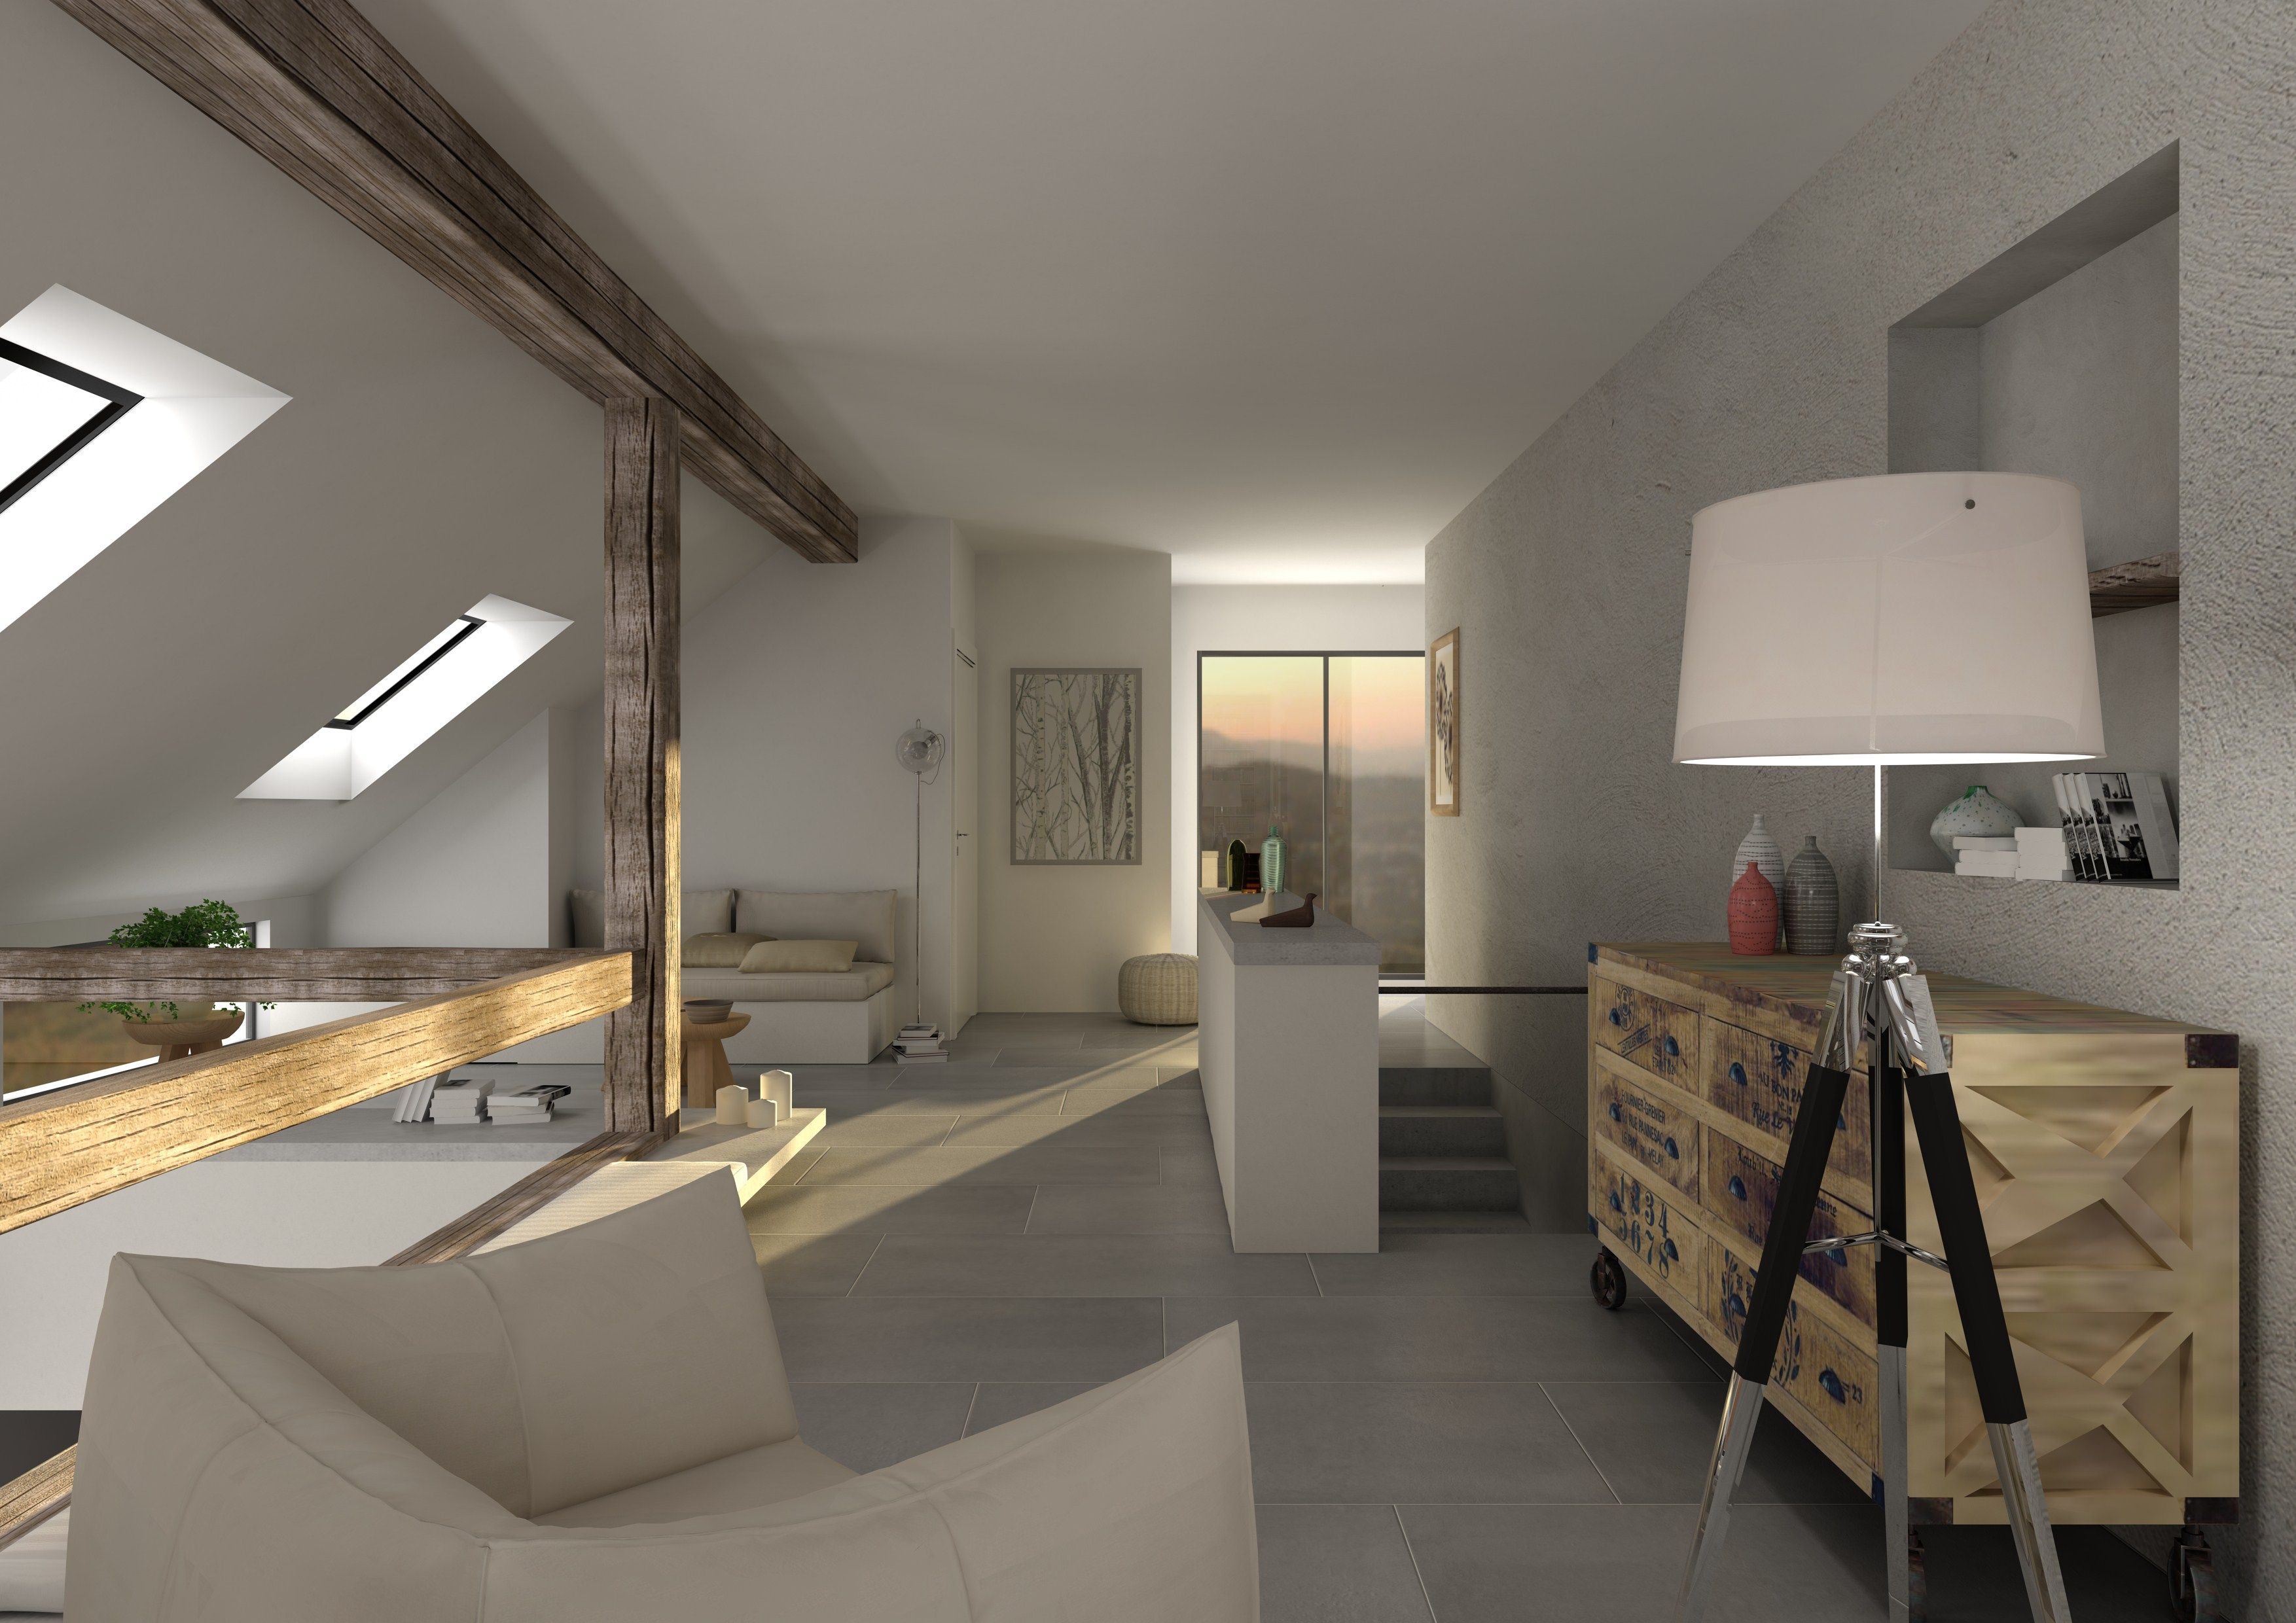 Scandinavian loft, virtual image, rendered with DomuS3D and mental ray